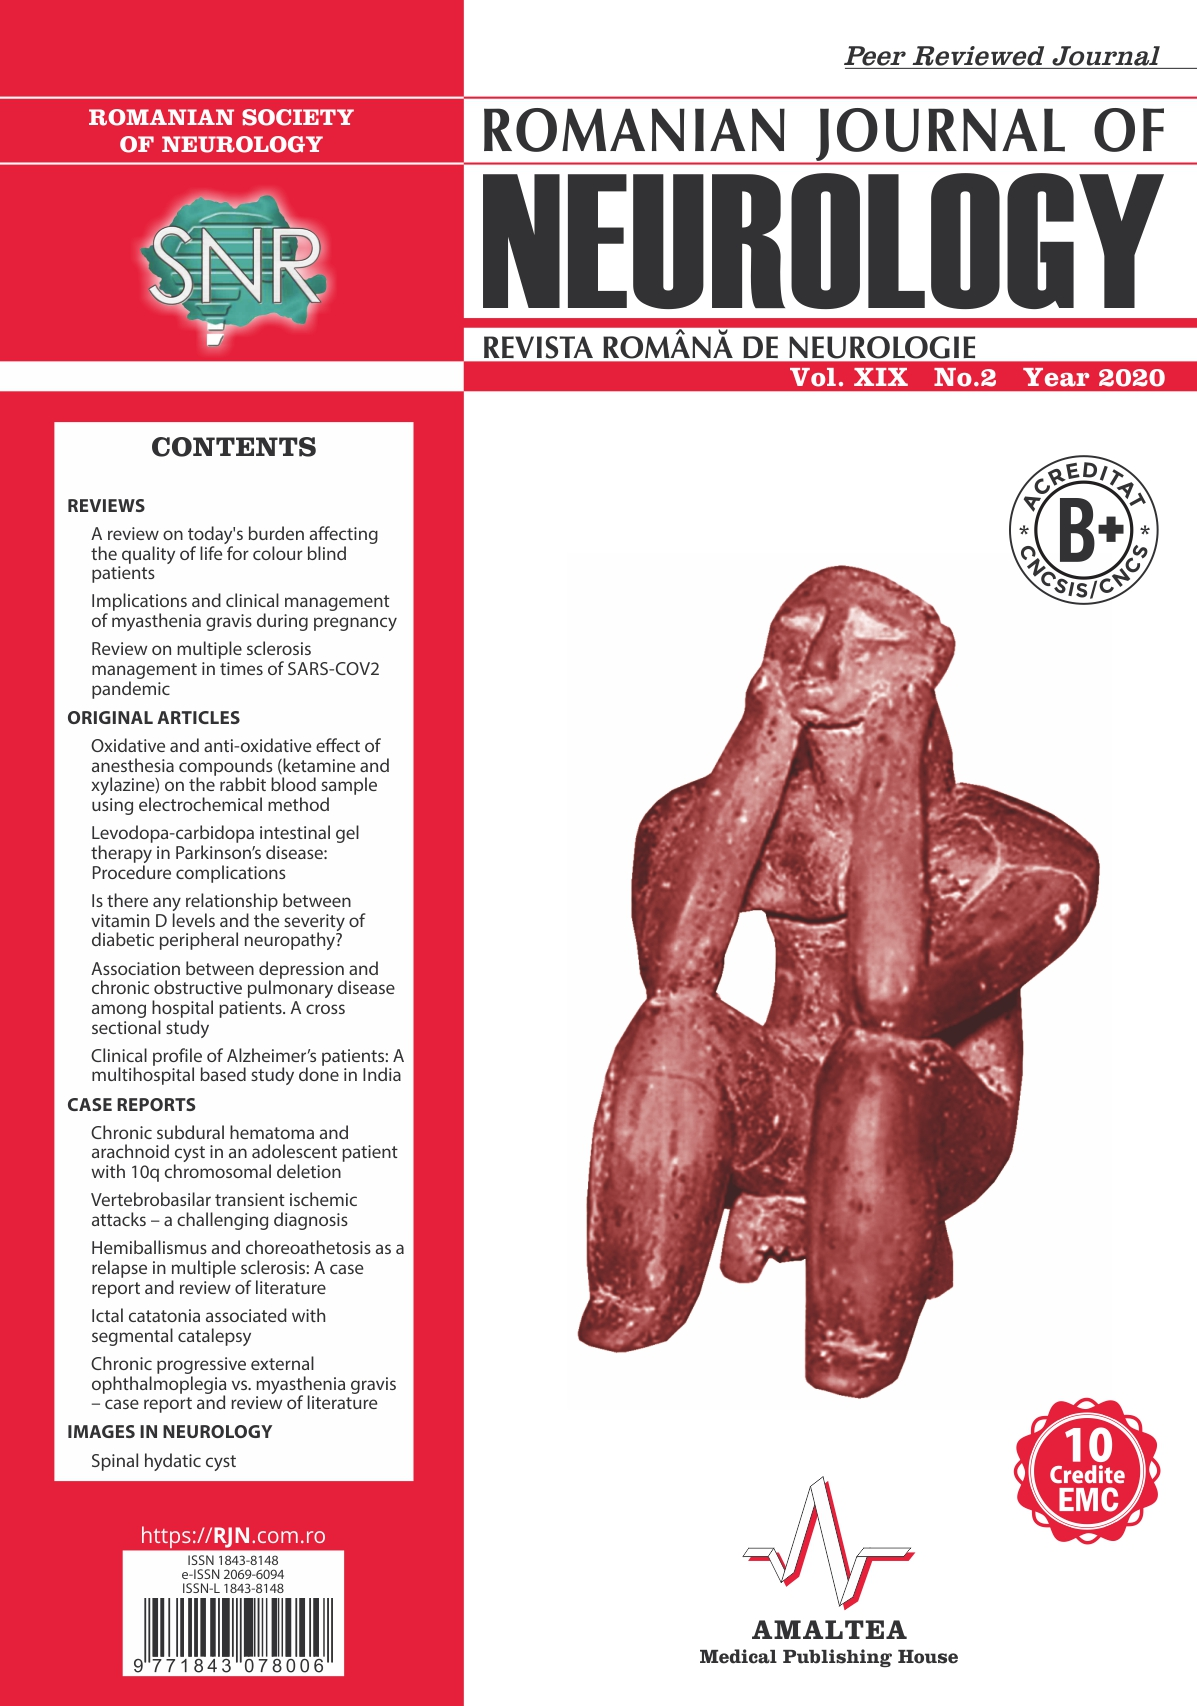 Romanian Journal of Neurology, Volume XIX, No. 2, 2020